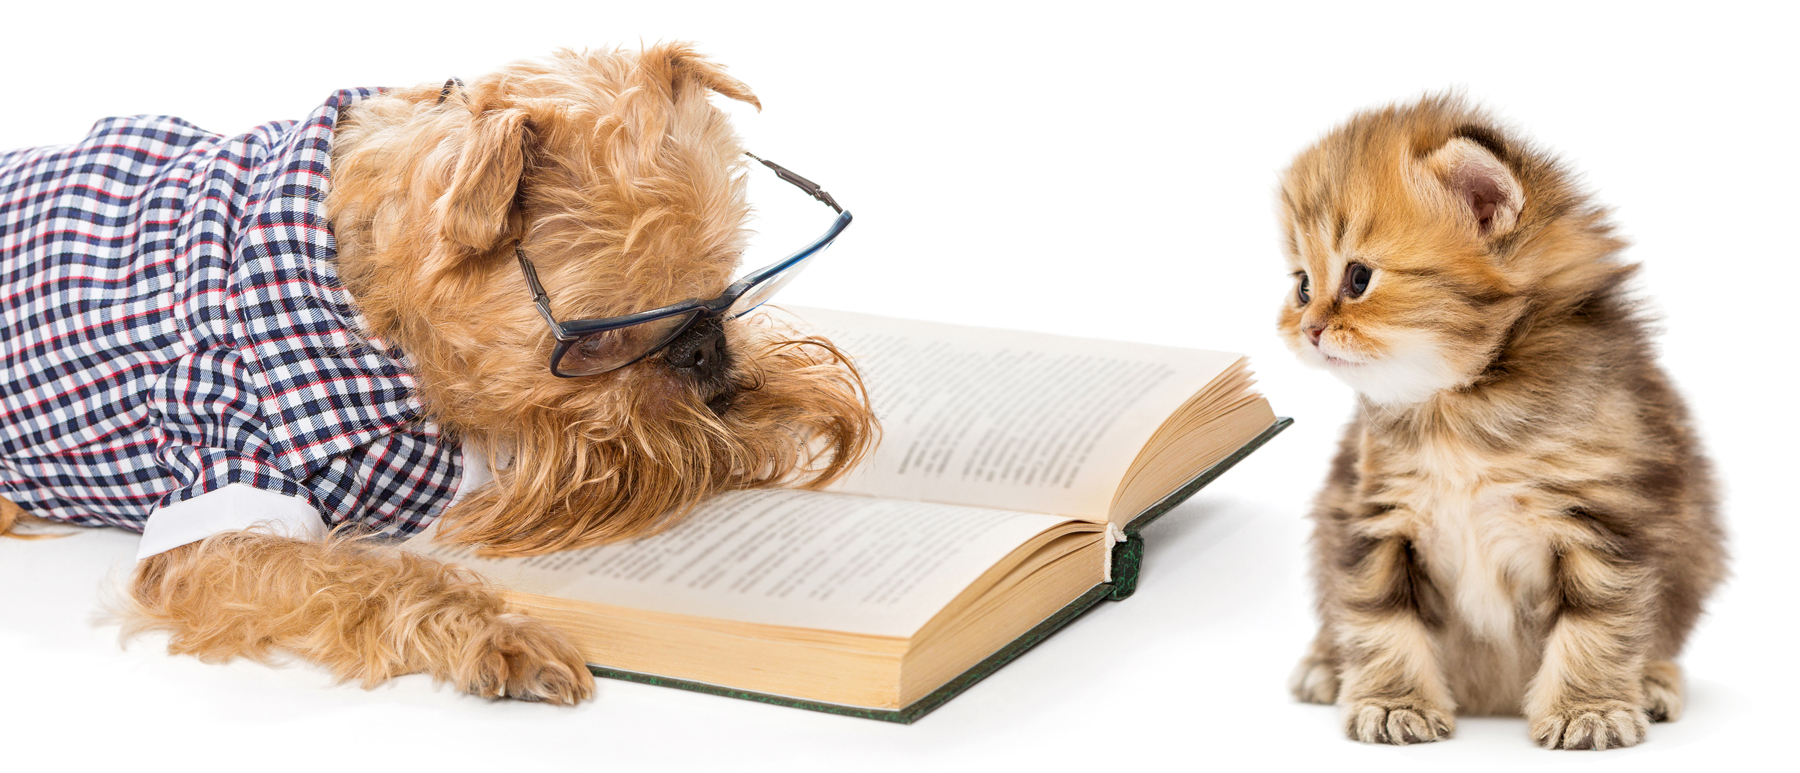 A dog in a shirt and glasses on reading a book to a kitten